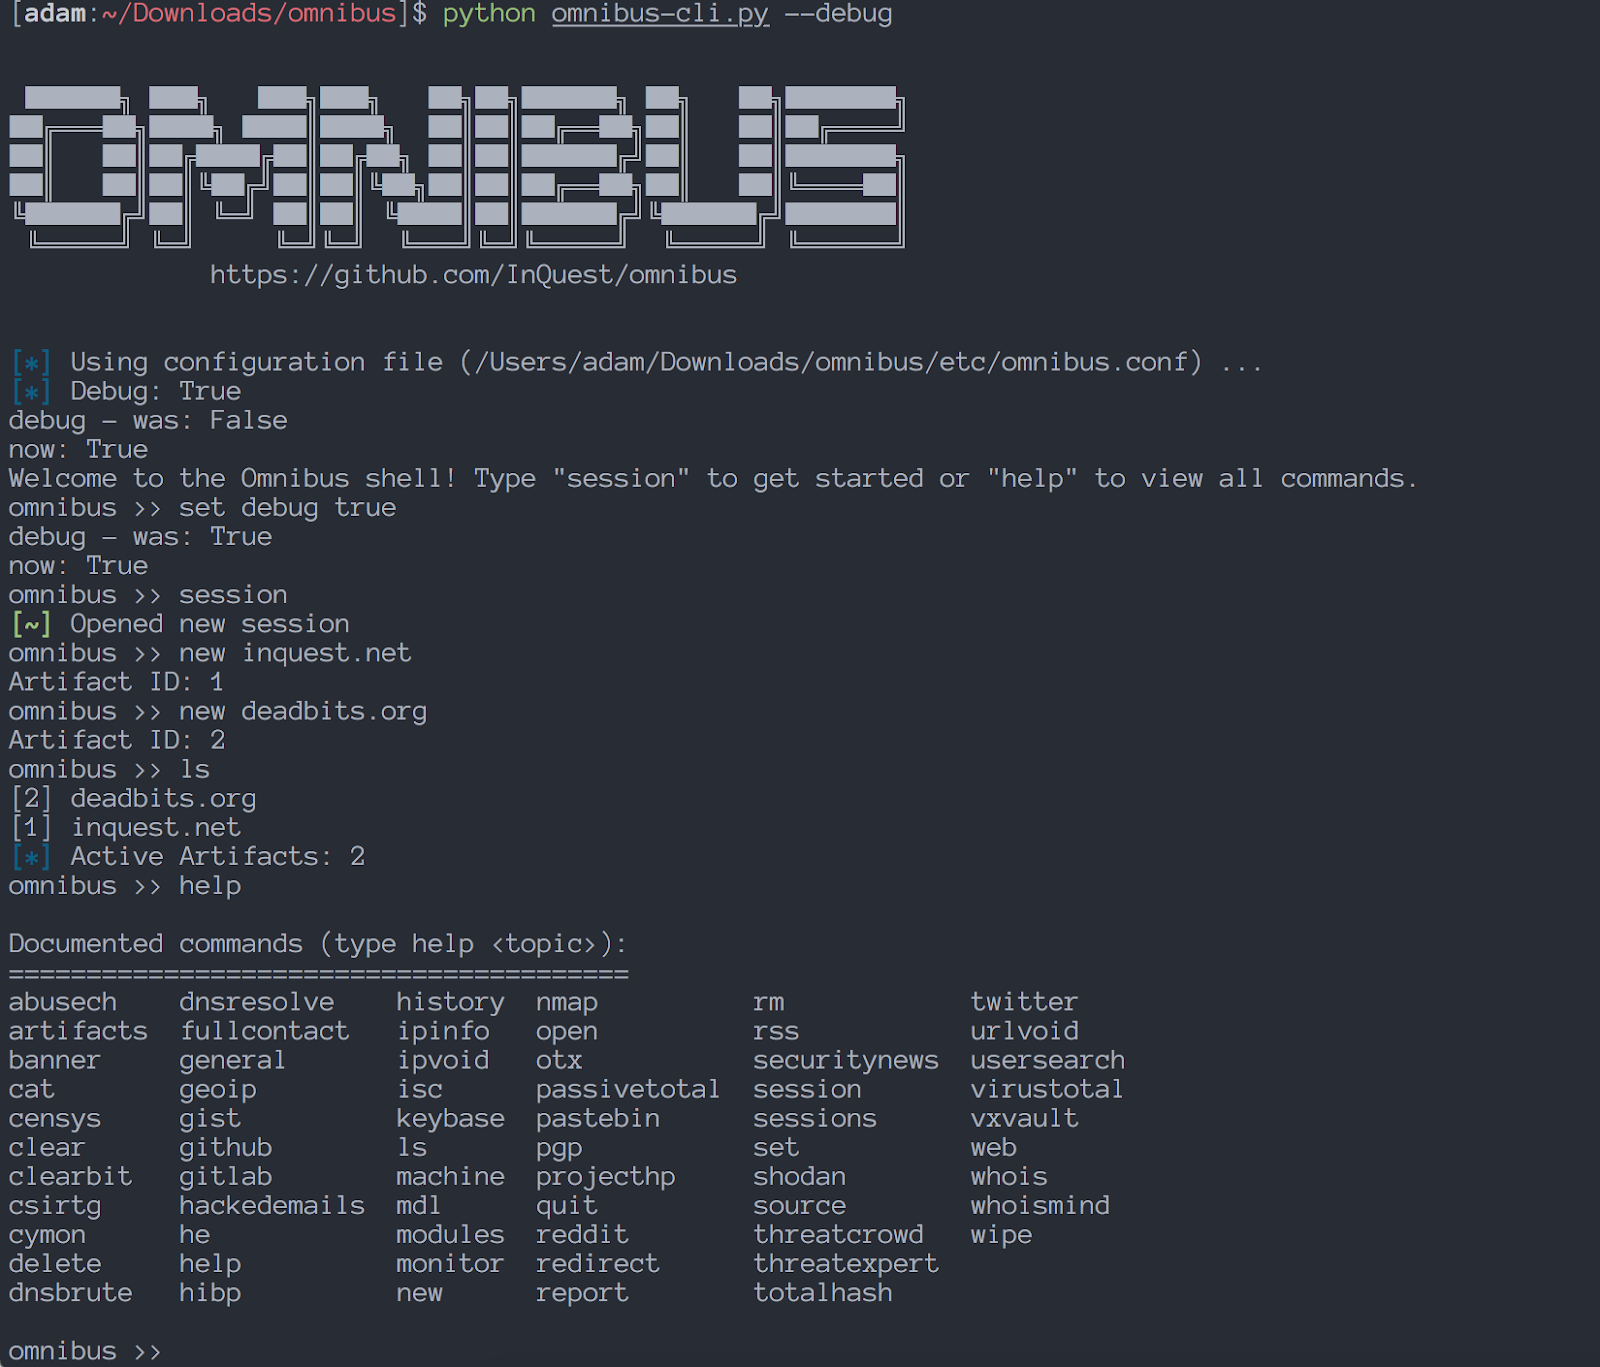 Omnibus - Open Source Intelligence Collection, Research, And